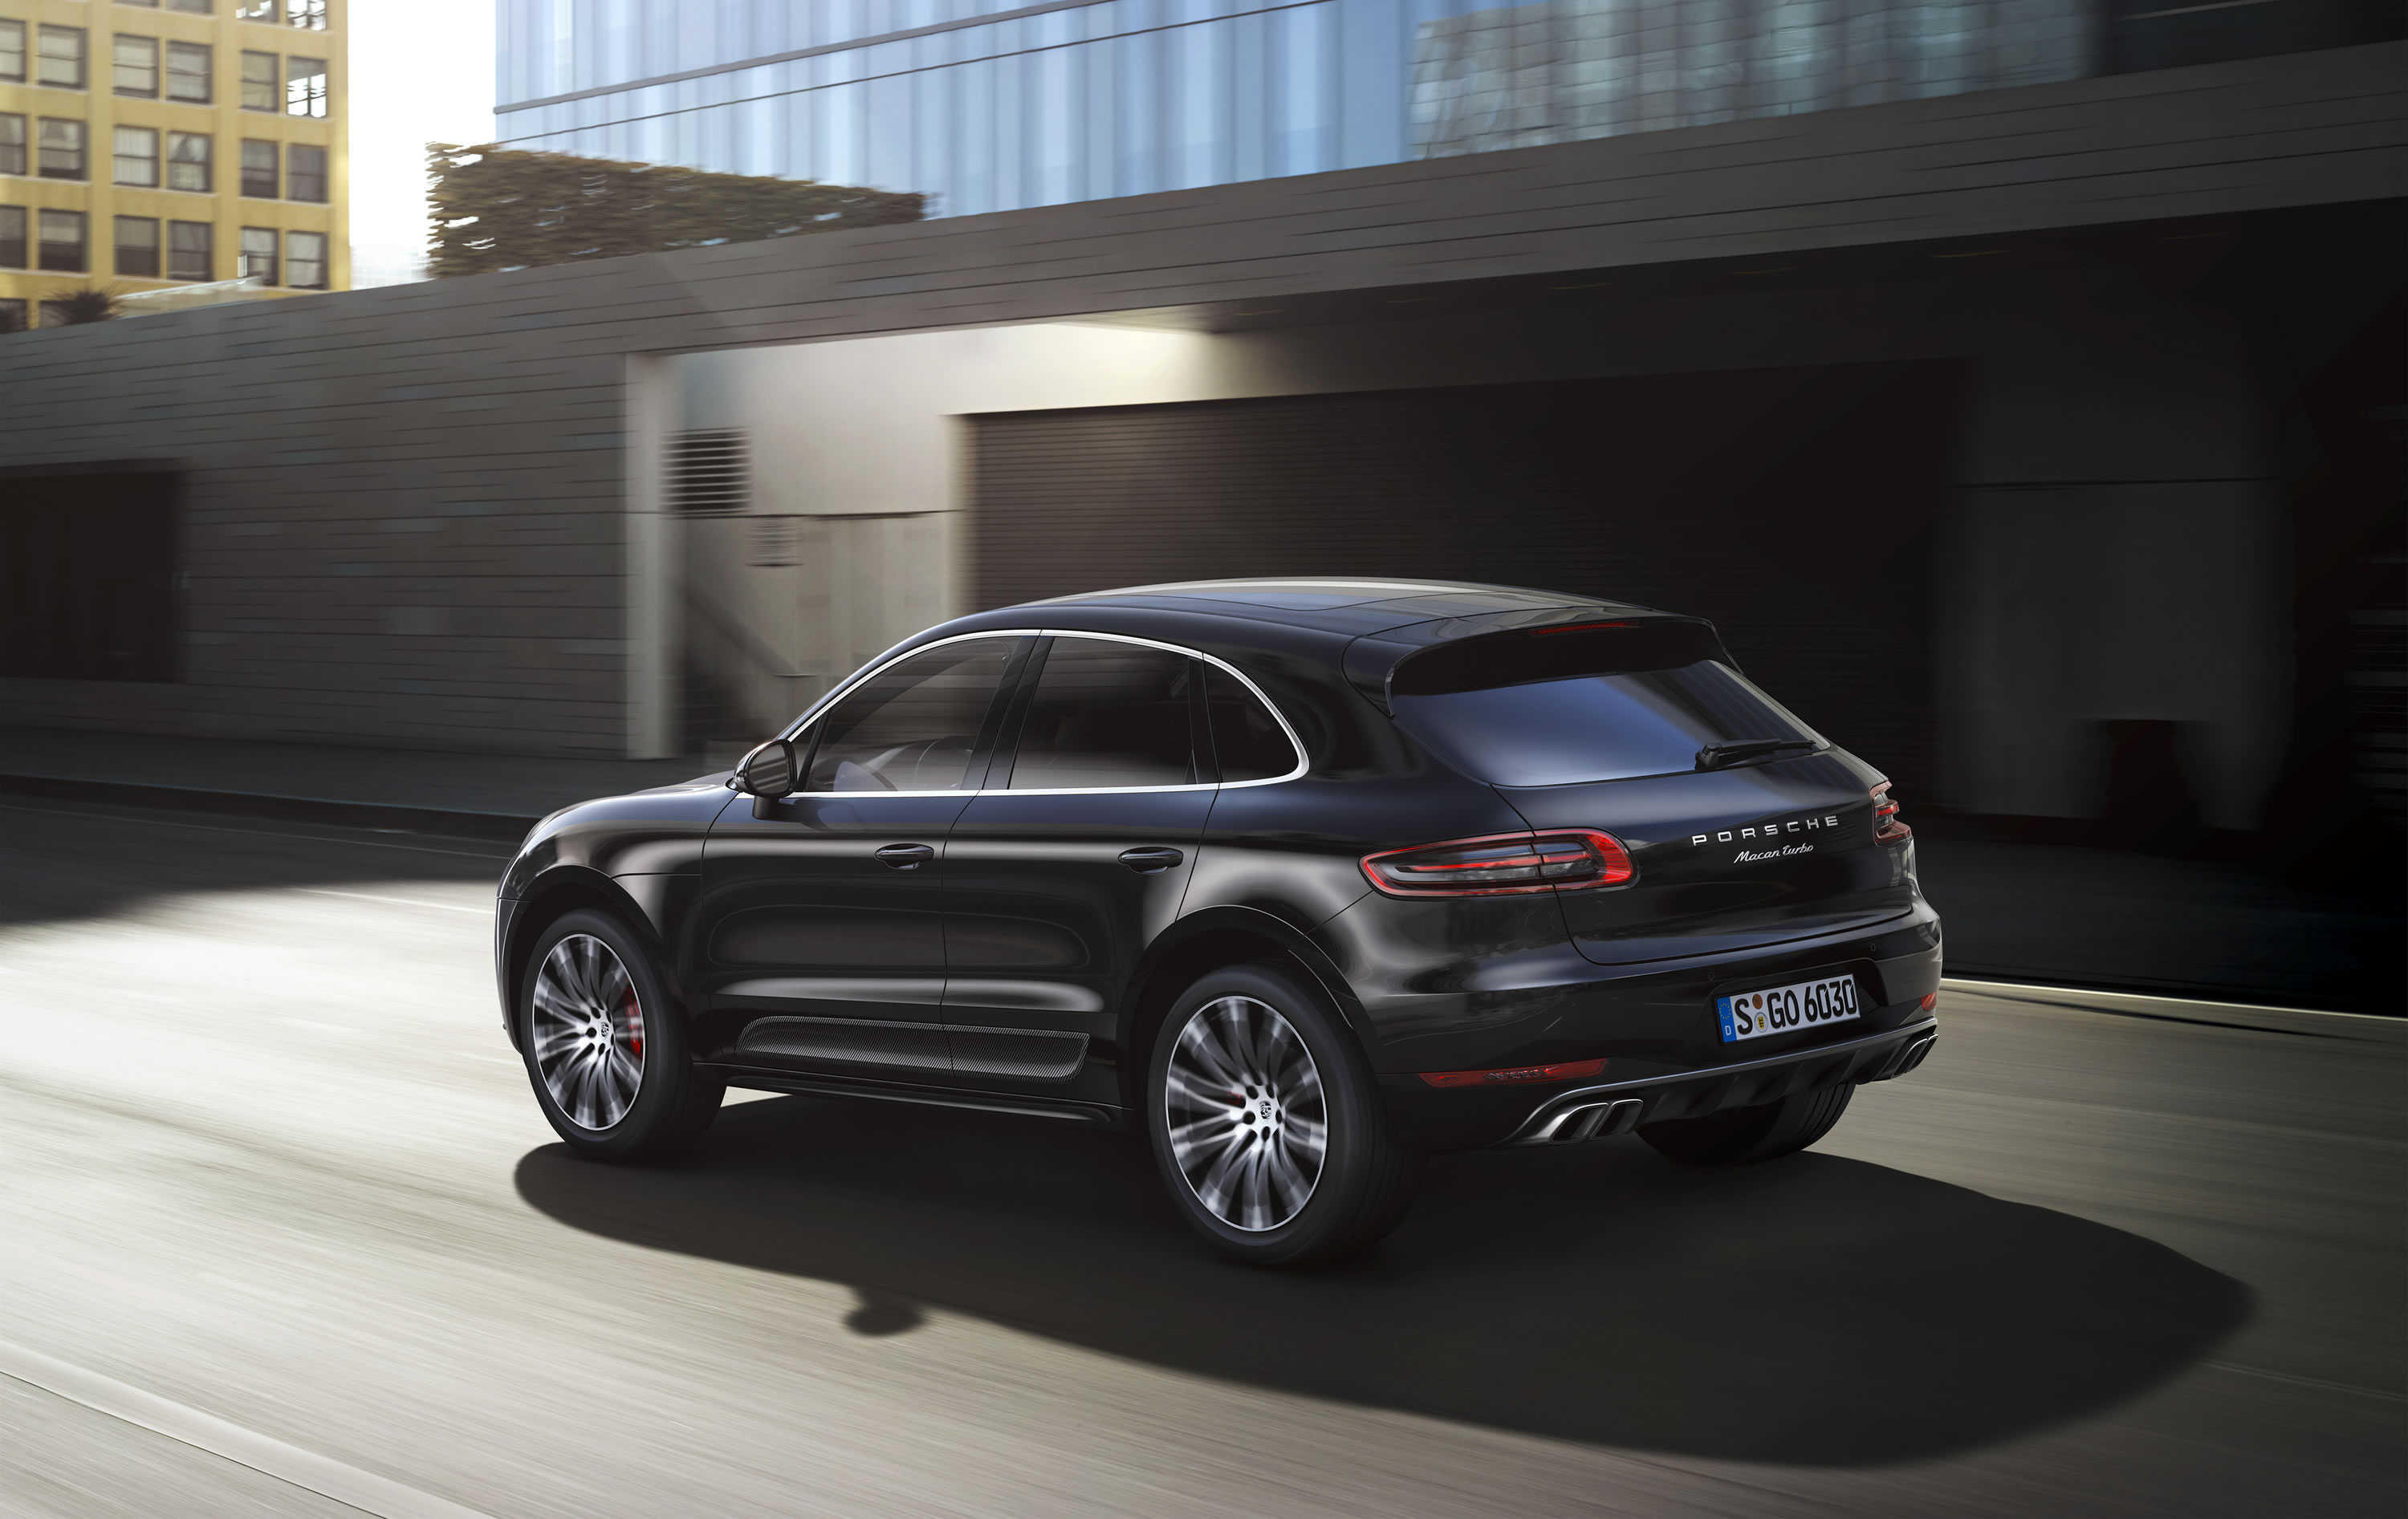 2015 porsche macan turbo photos, specs and review - rs